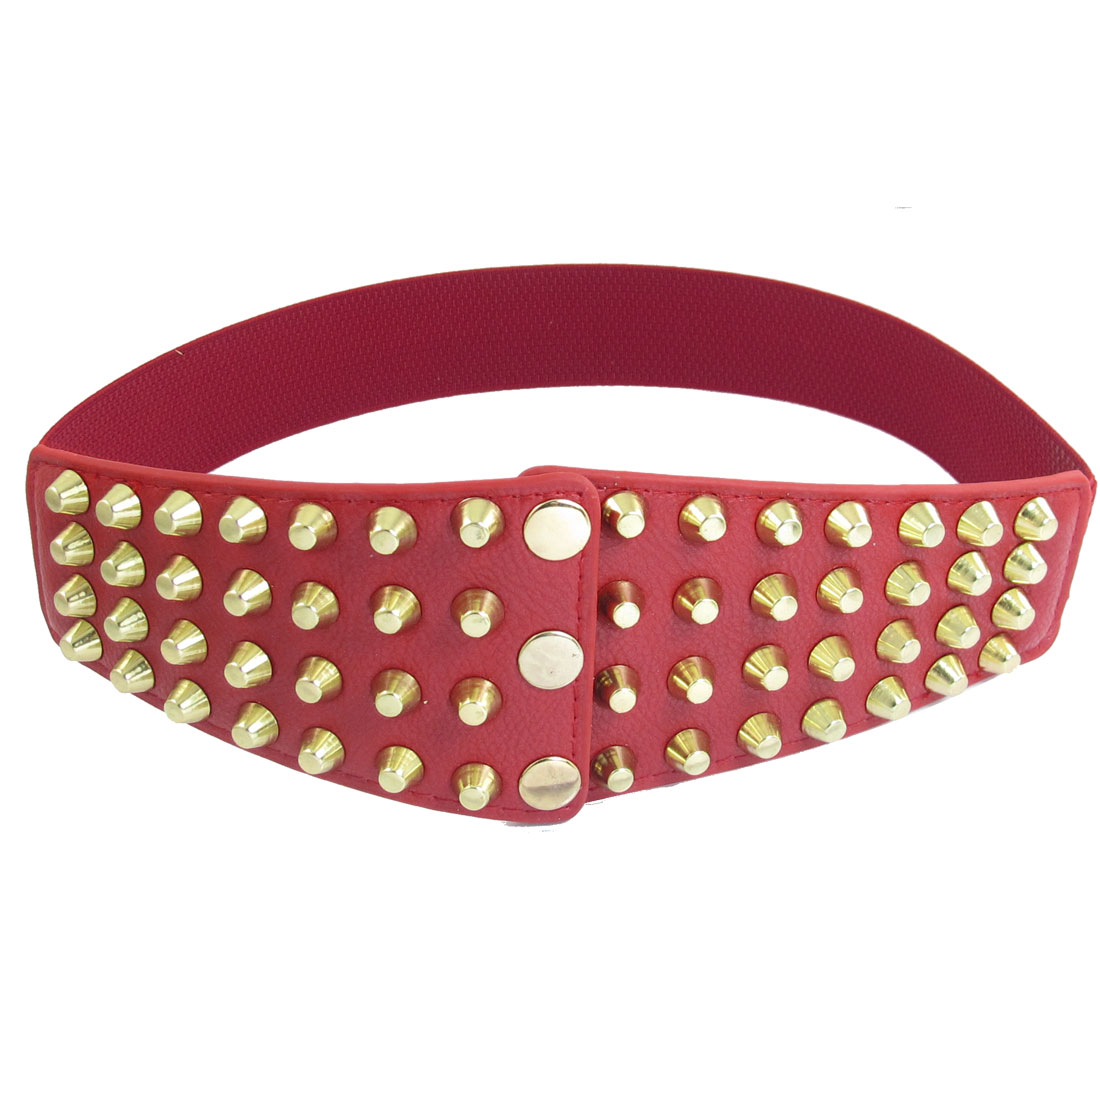 Red Faux Leather Detail 4cm Width Stretchy Waistband Belt for Ladies